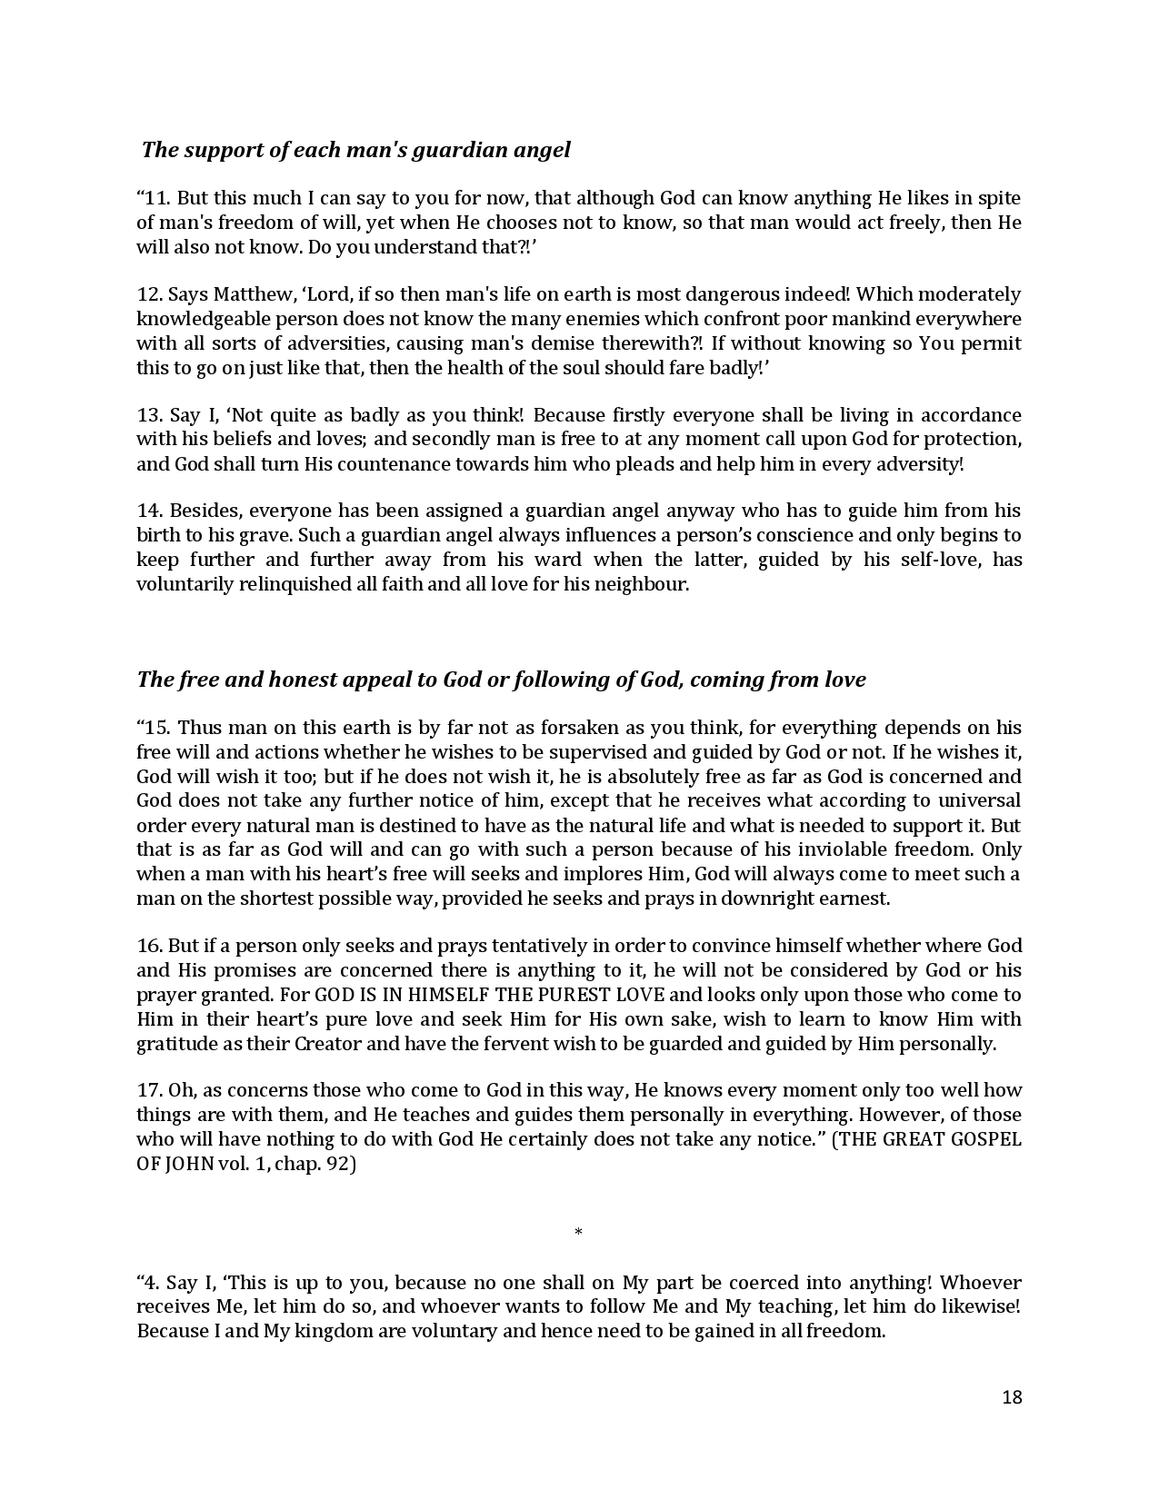 Brochure - NEW REVELATION - ABOUT INTELECT, CONSCIENCE AND FREE-WILL